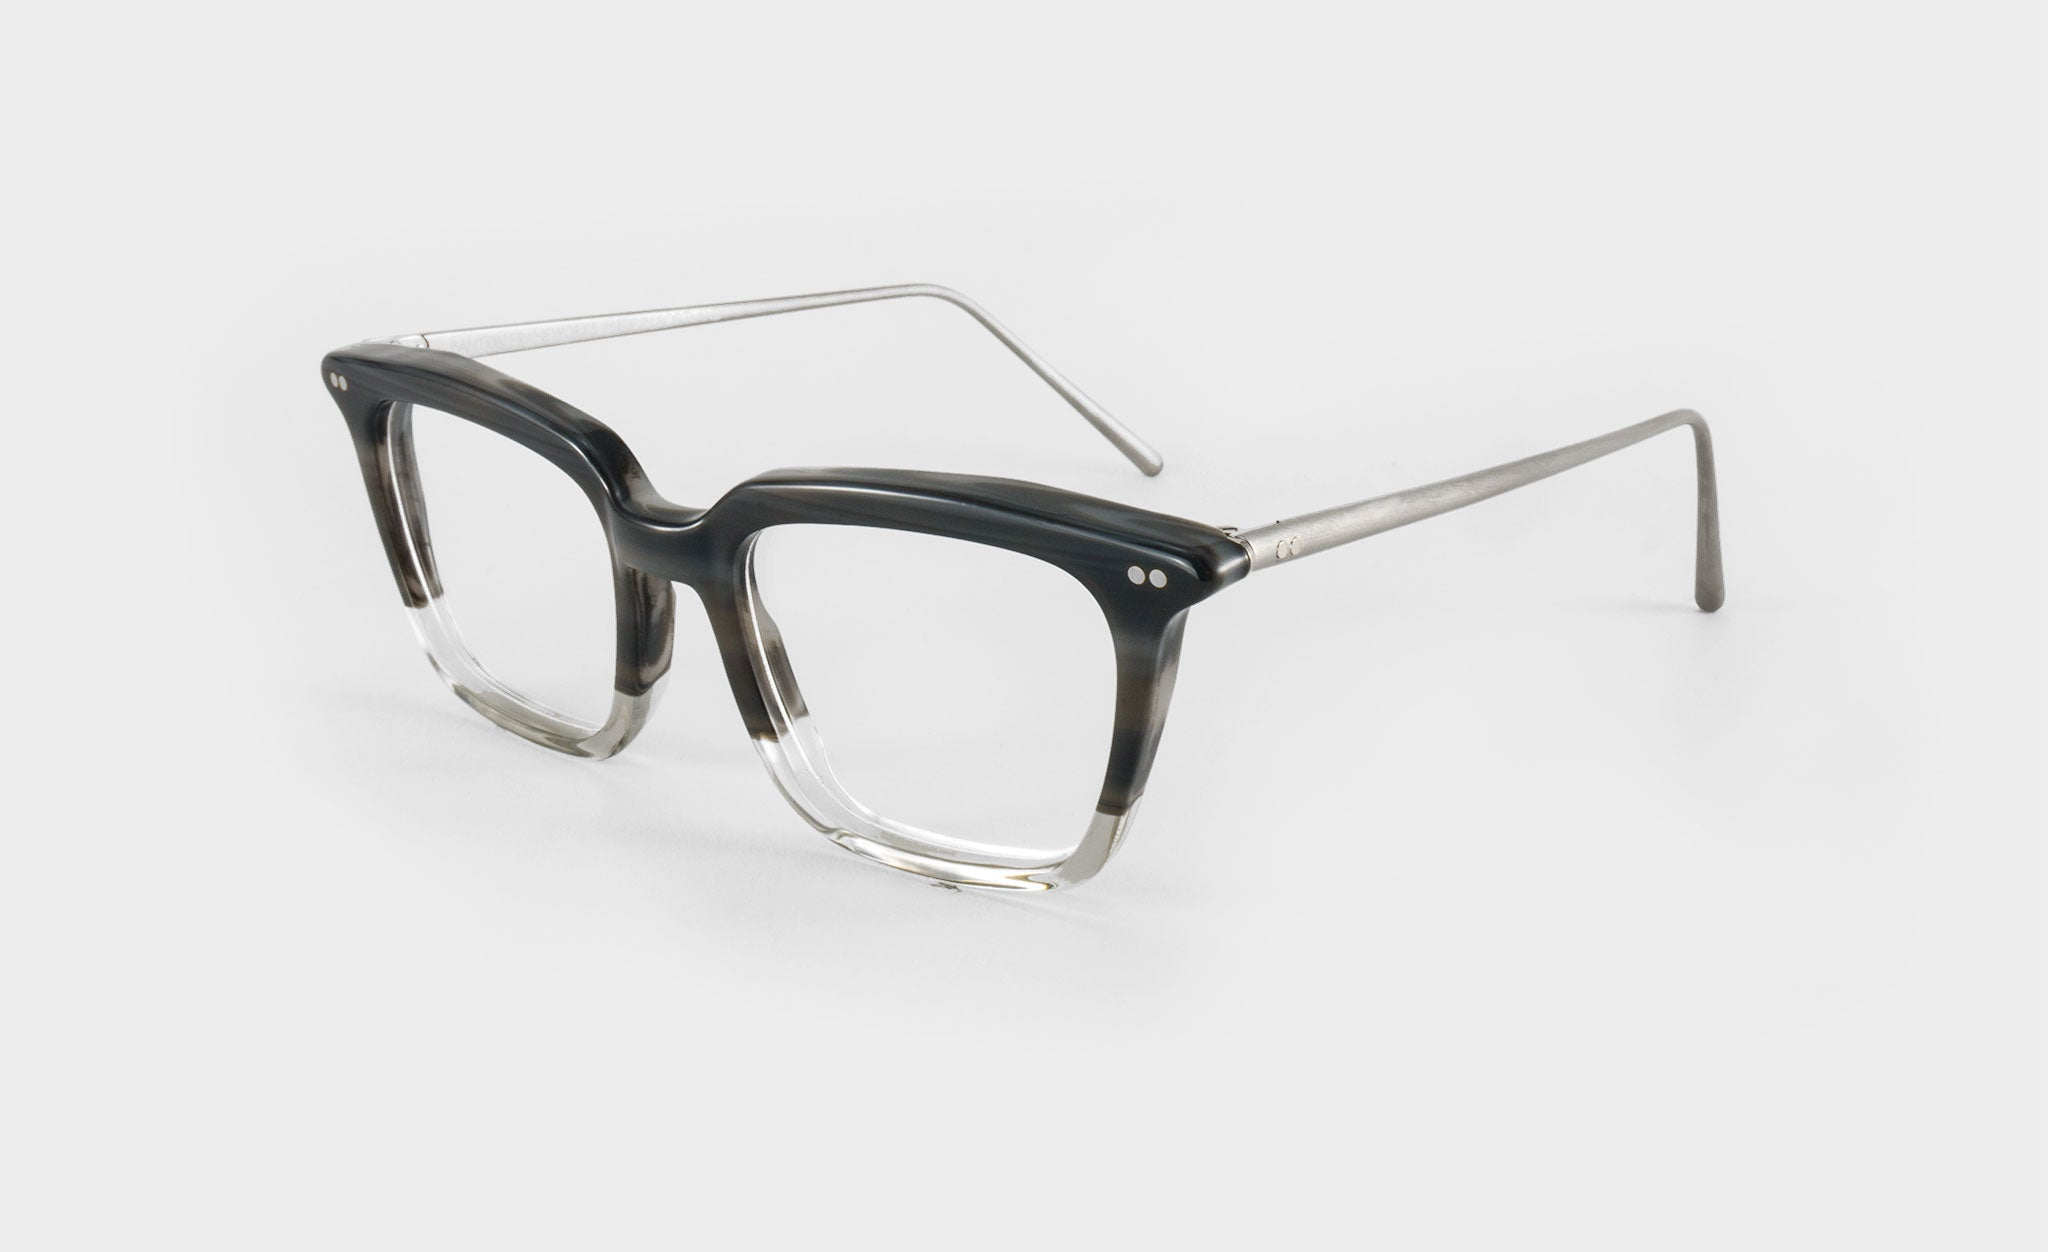 Optical glasses frame e mst side view